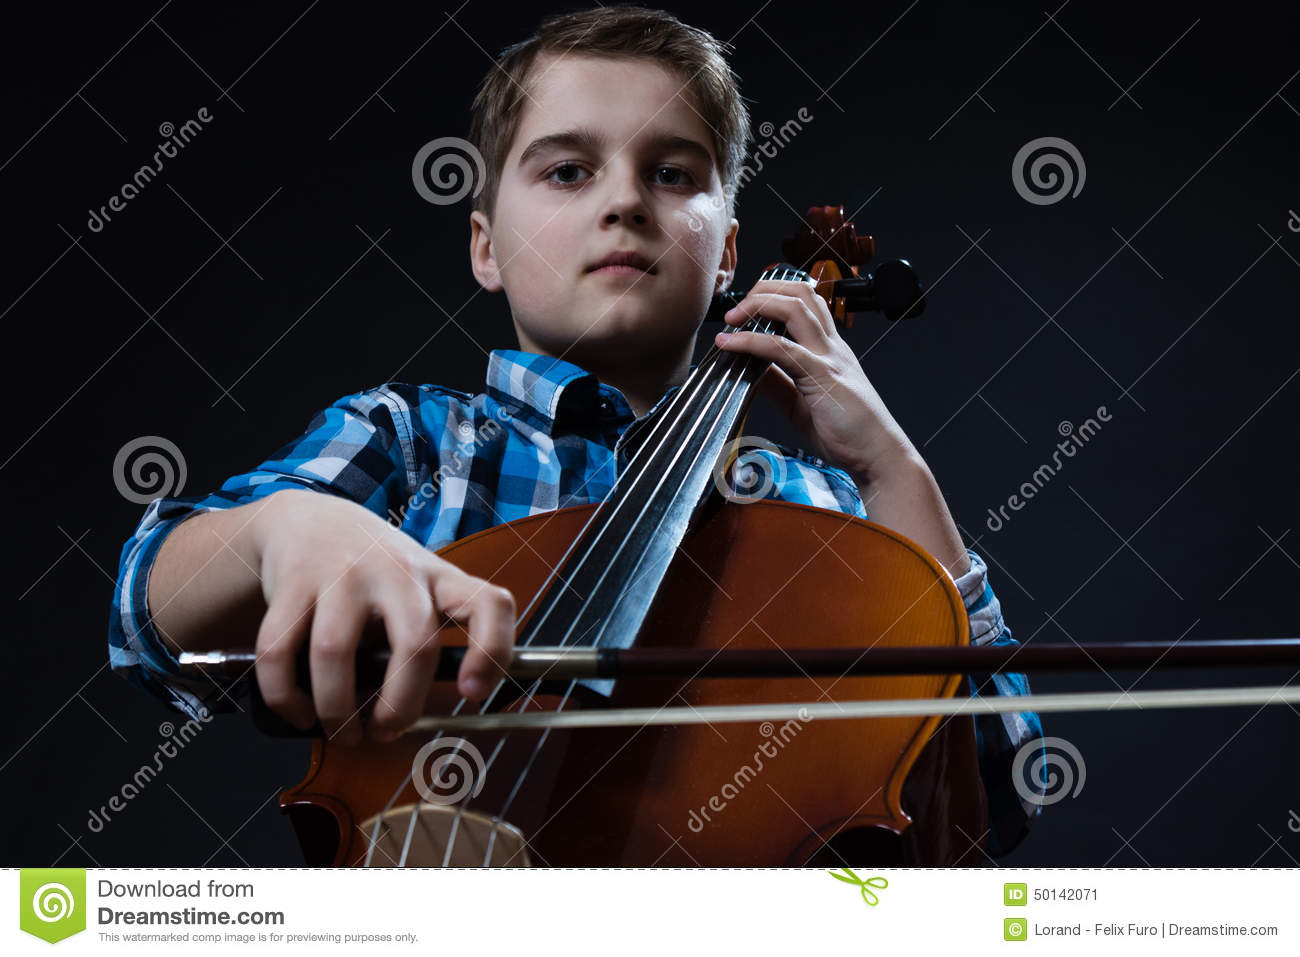 Young Cellist playing classical music on cello